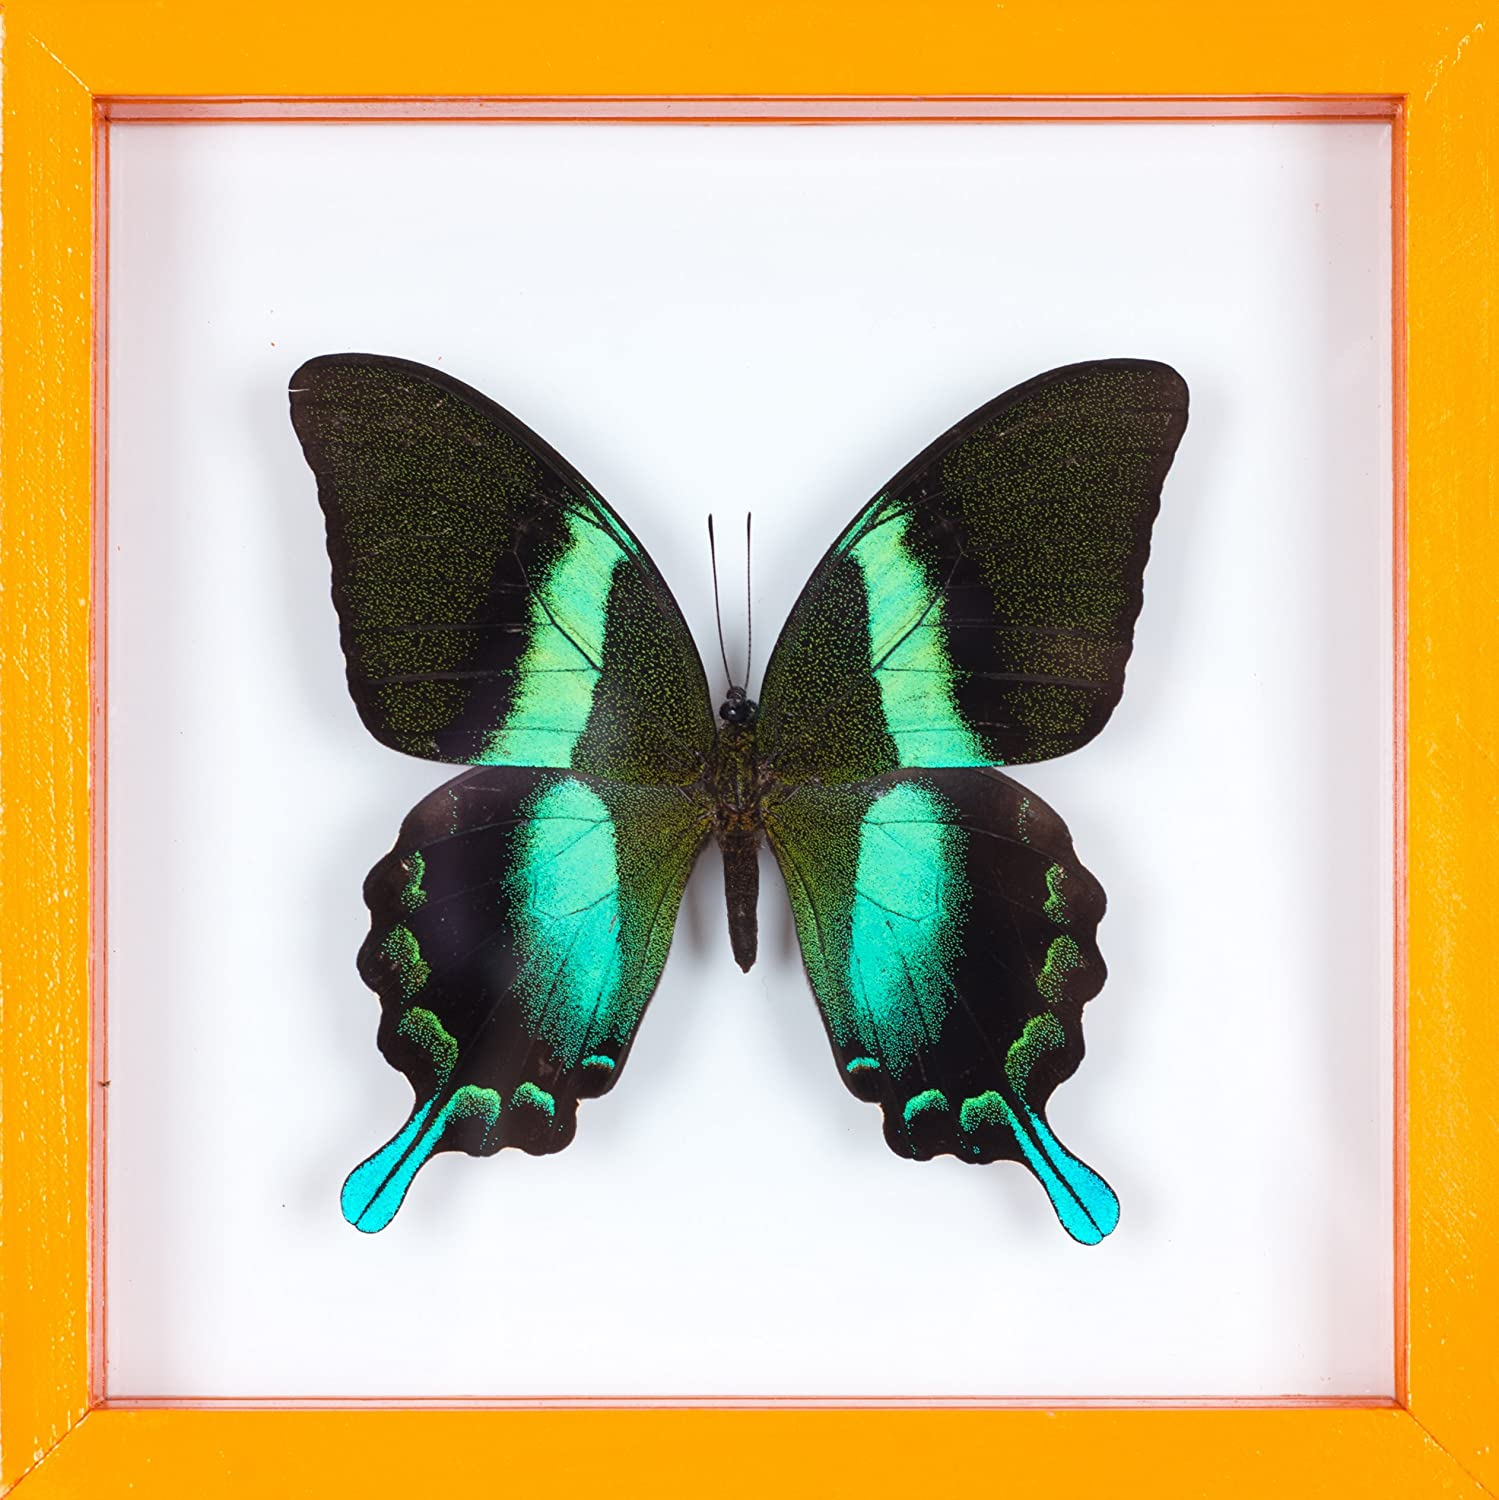 Amazon.de: Echter Schmetterling gerahmt, Taxidermie Schmetterling ...